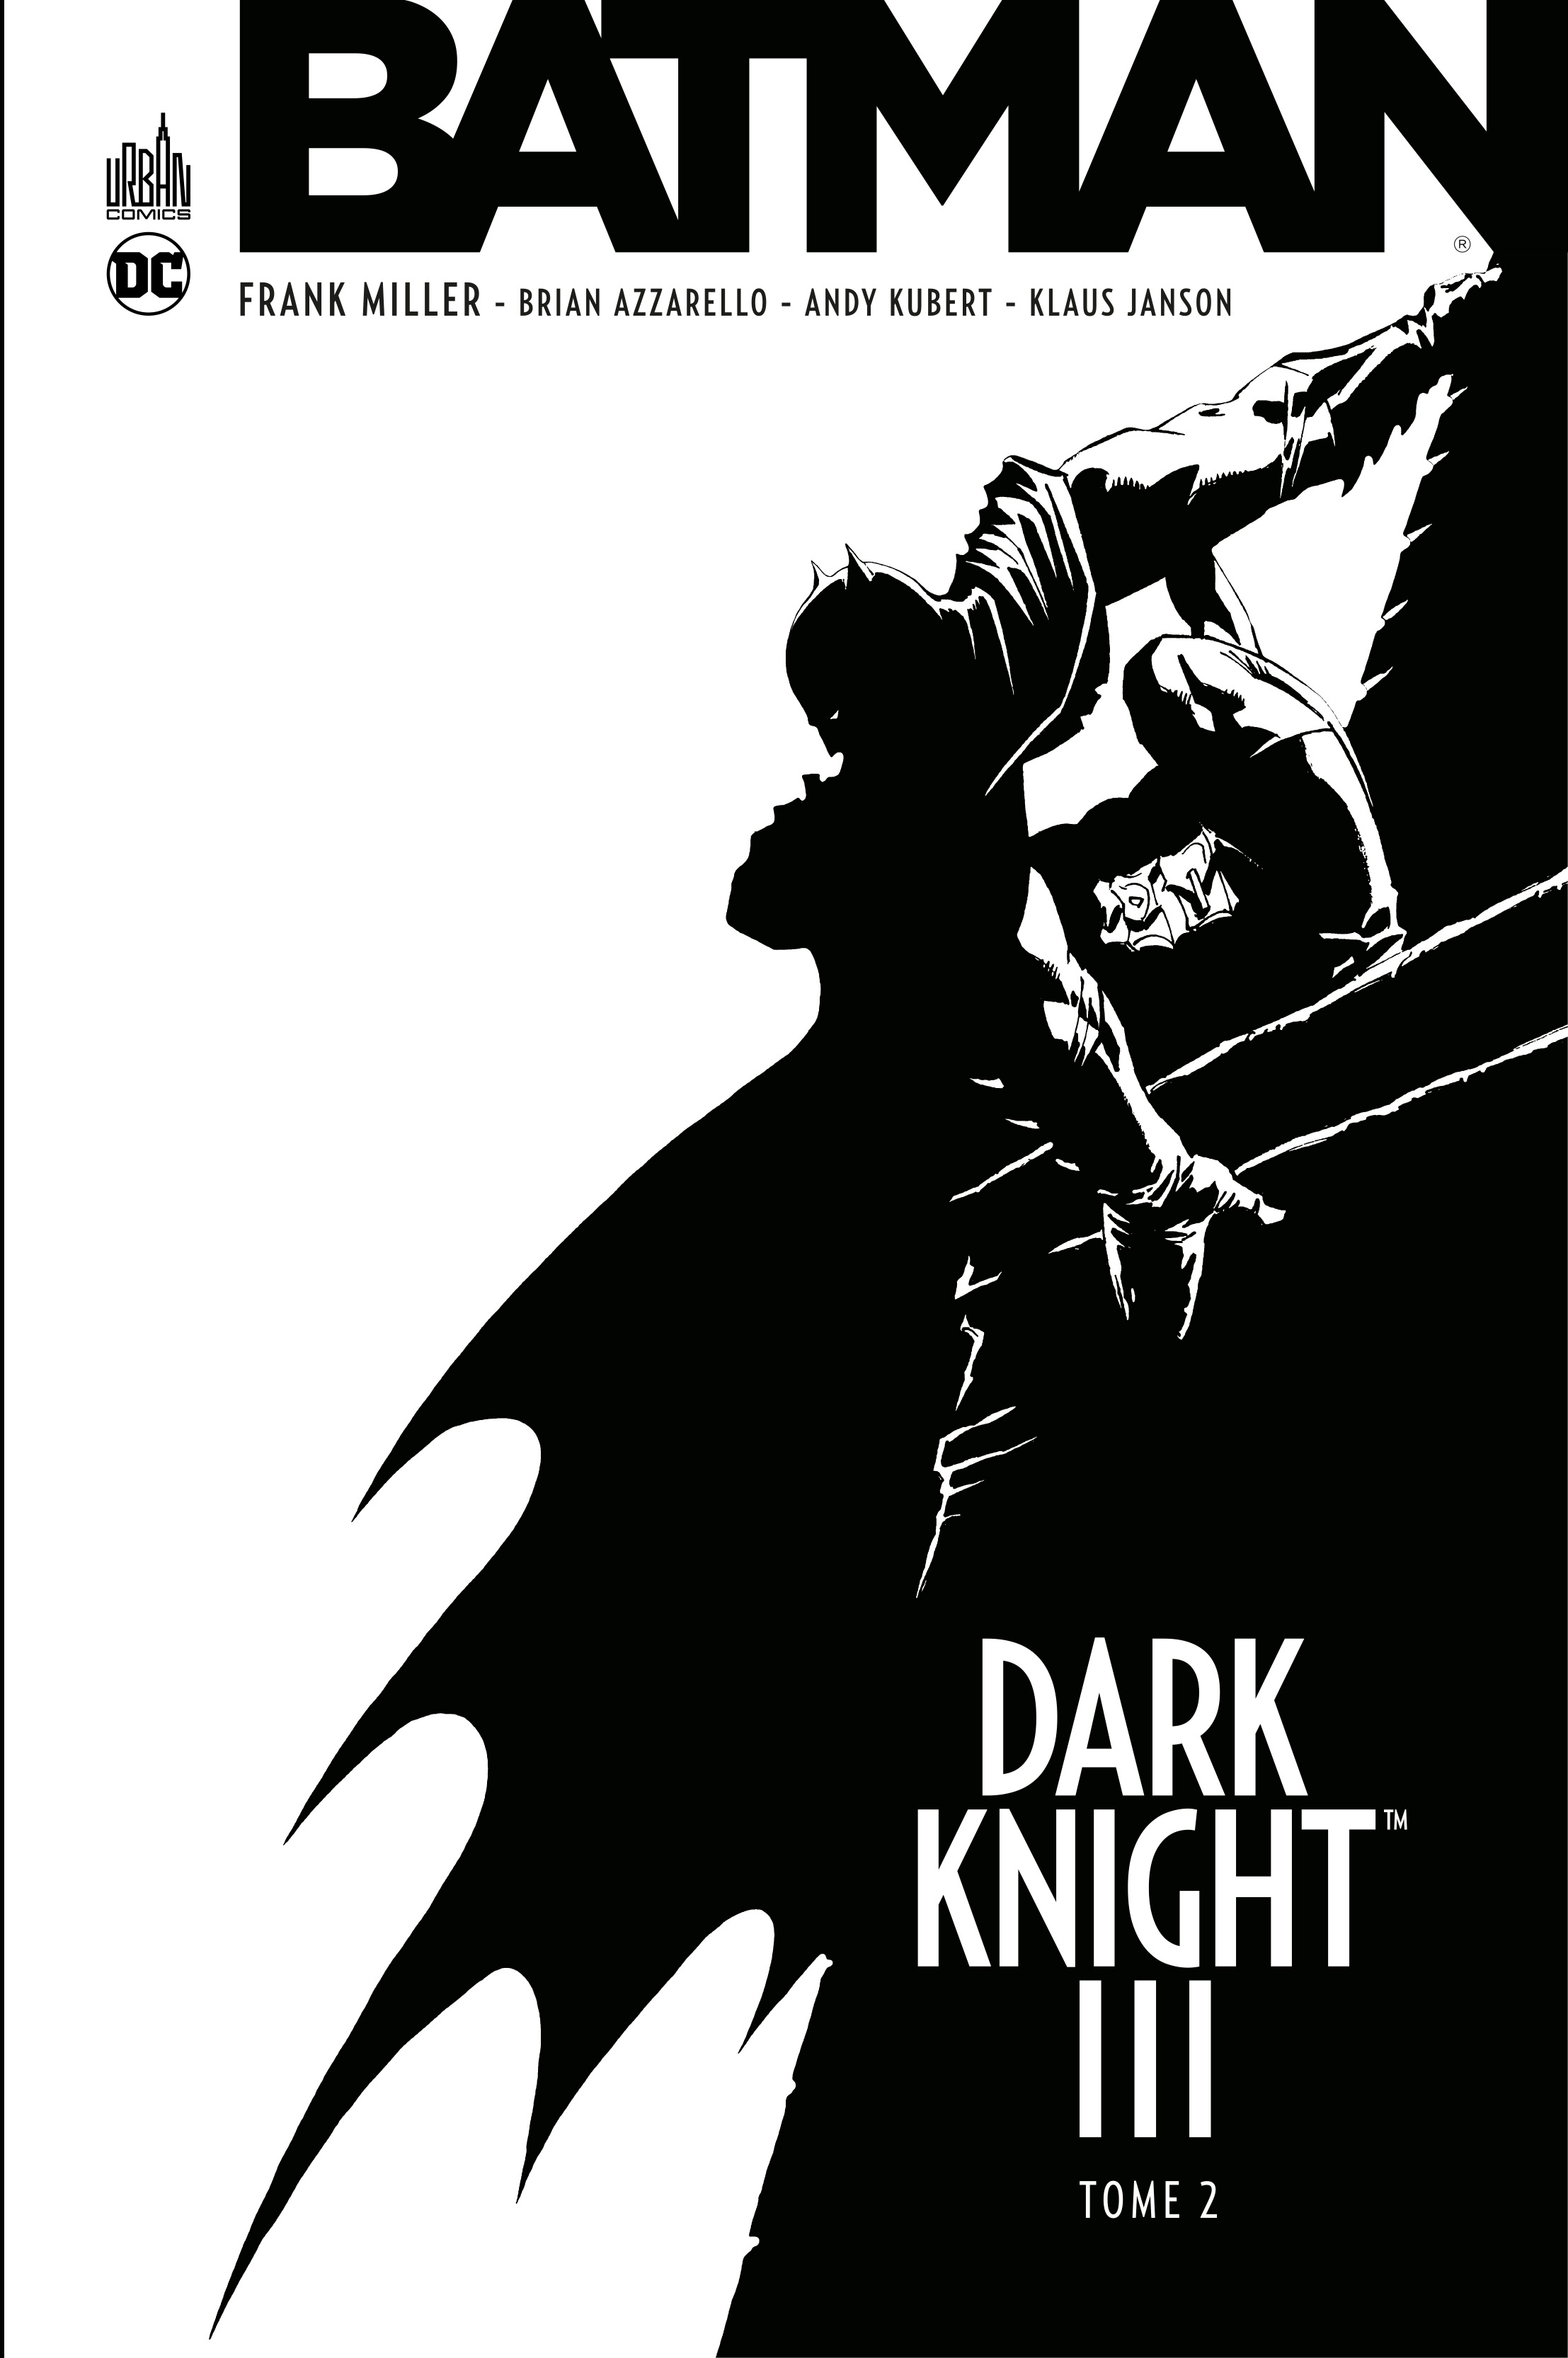 Dark knight III - Tome 2